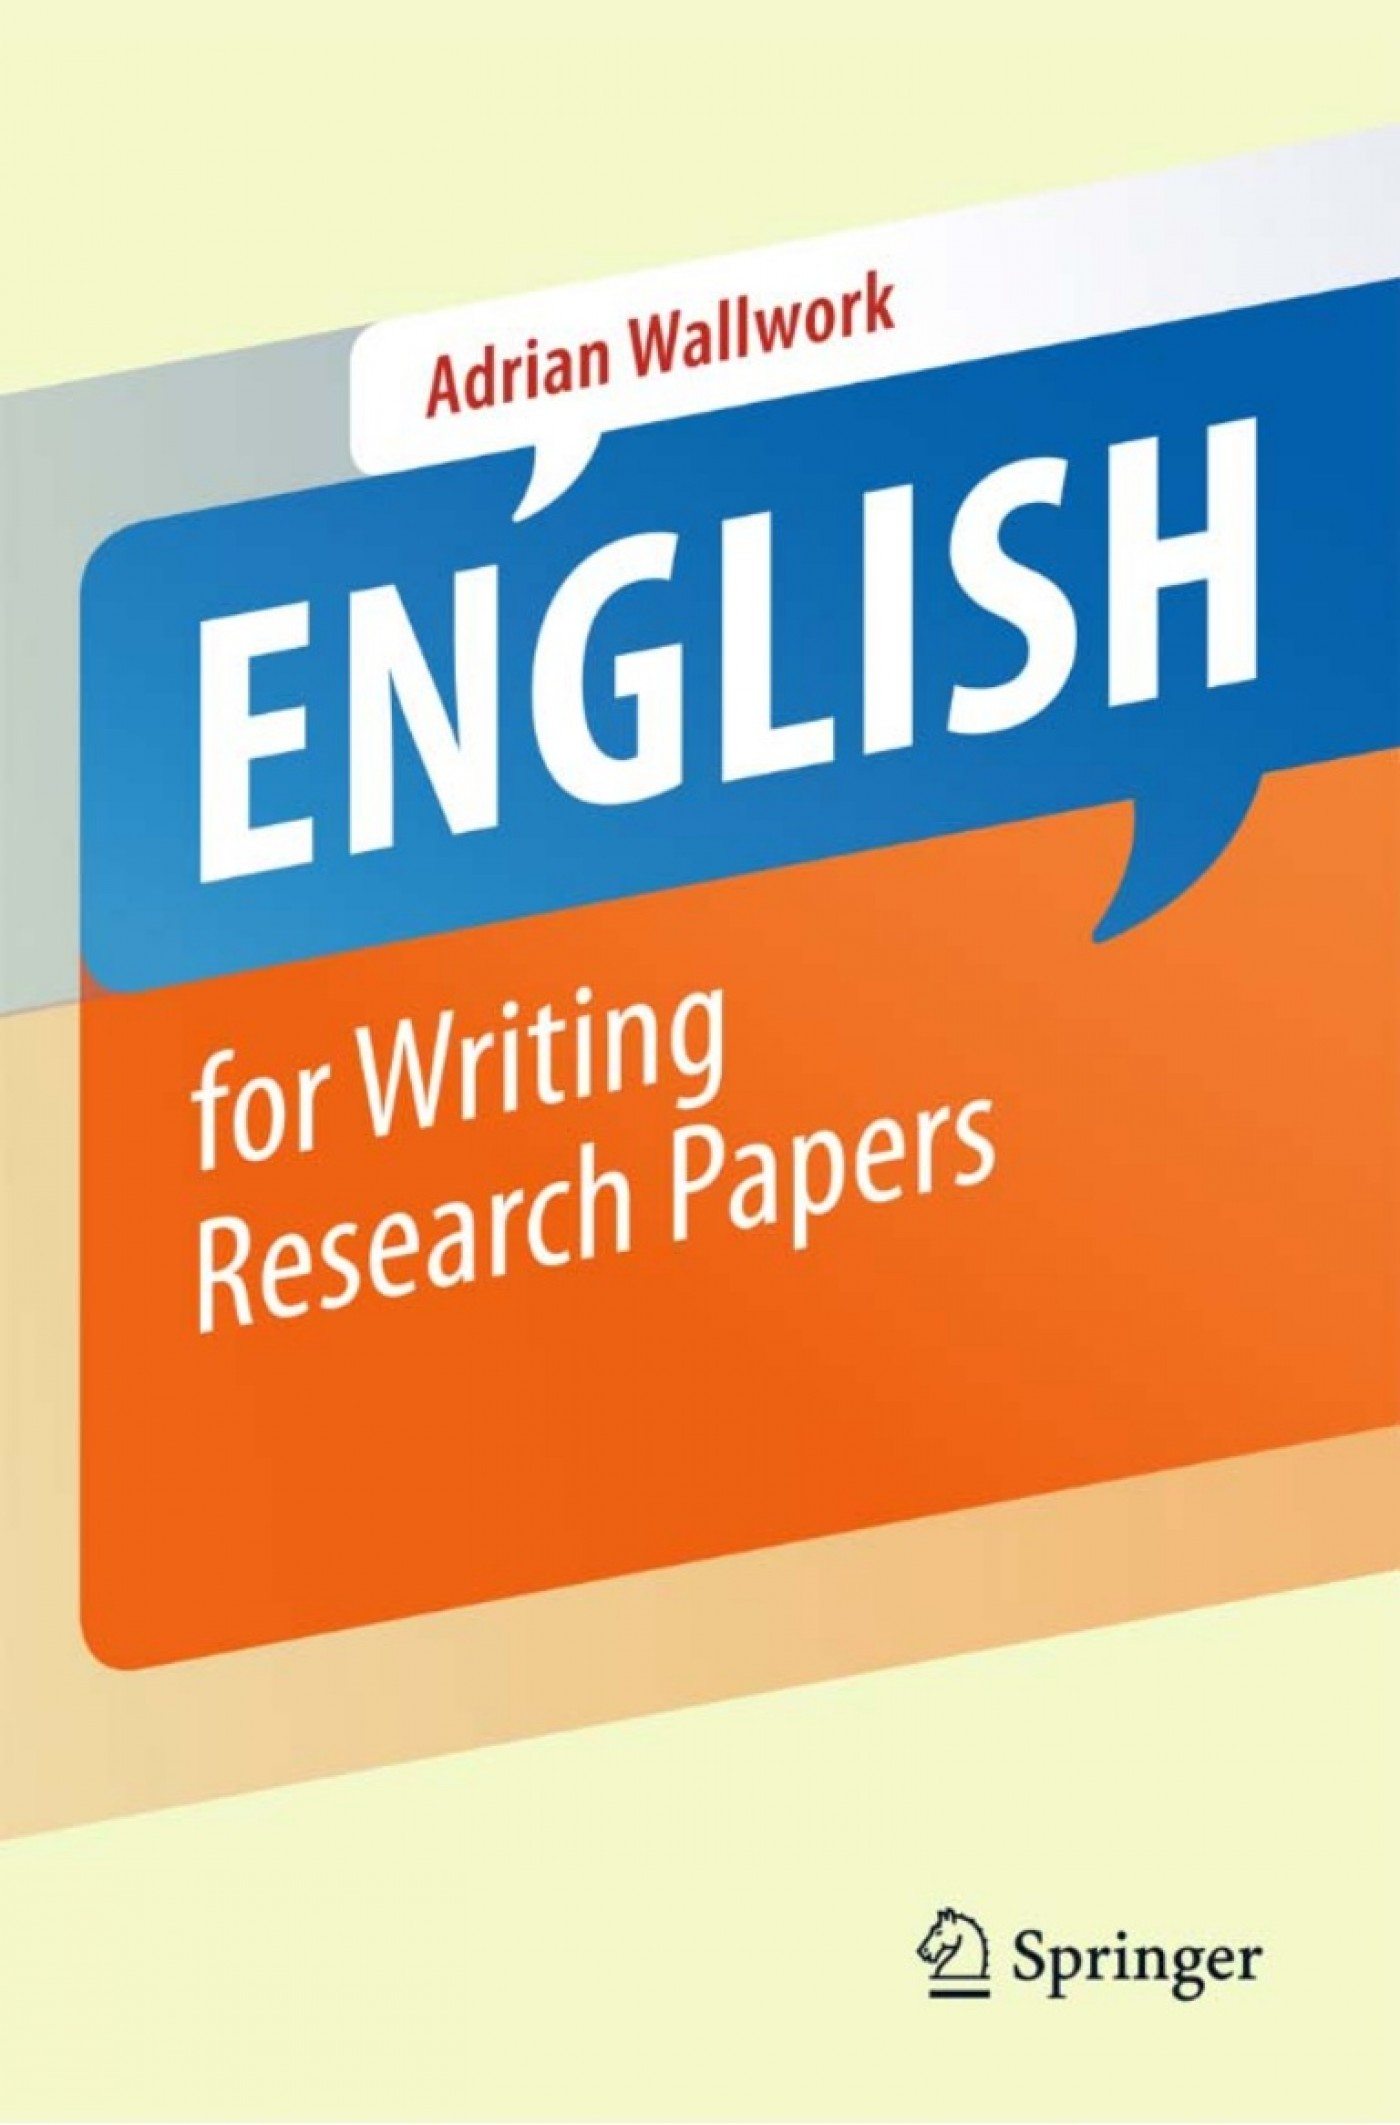 019 Englishforwritingresearchpapers Conversion Gate01 Thumbnail Writing Research Striking Paper Papers Lester A Outline Middle School Across The Curriculum 1400